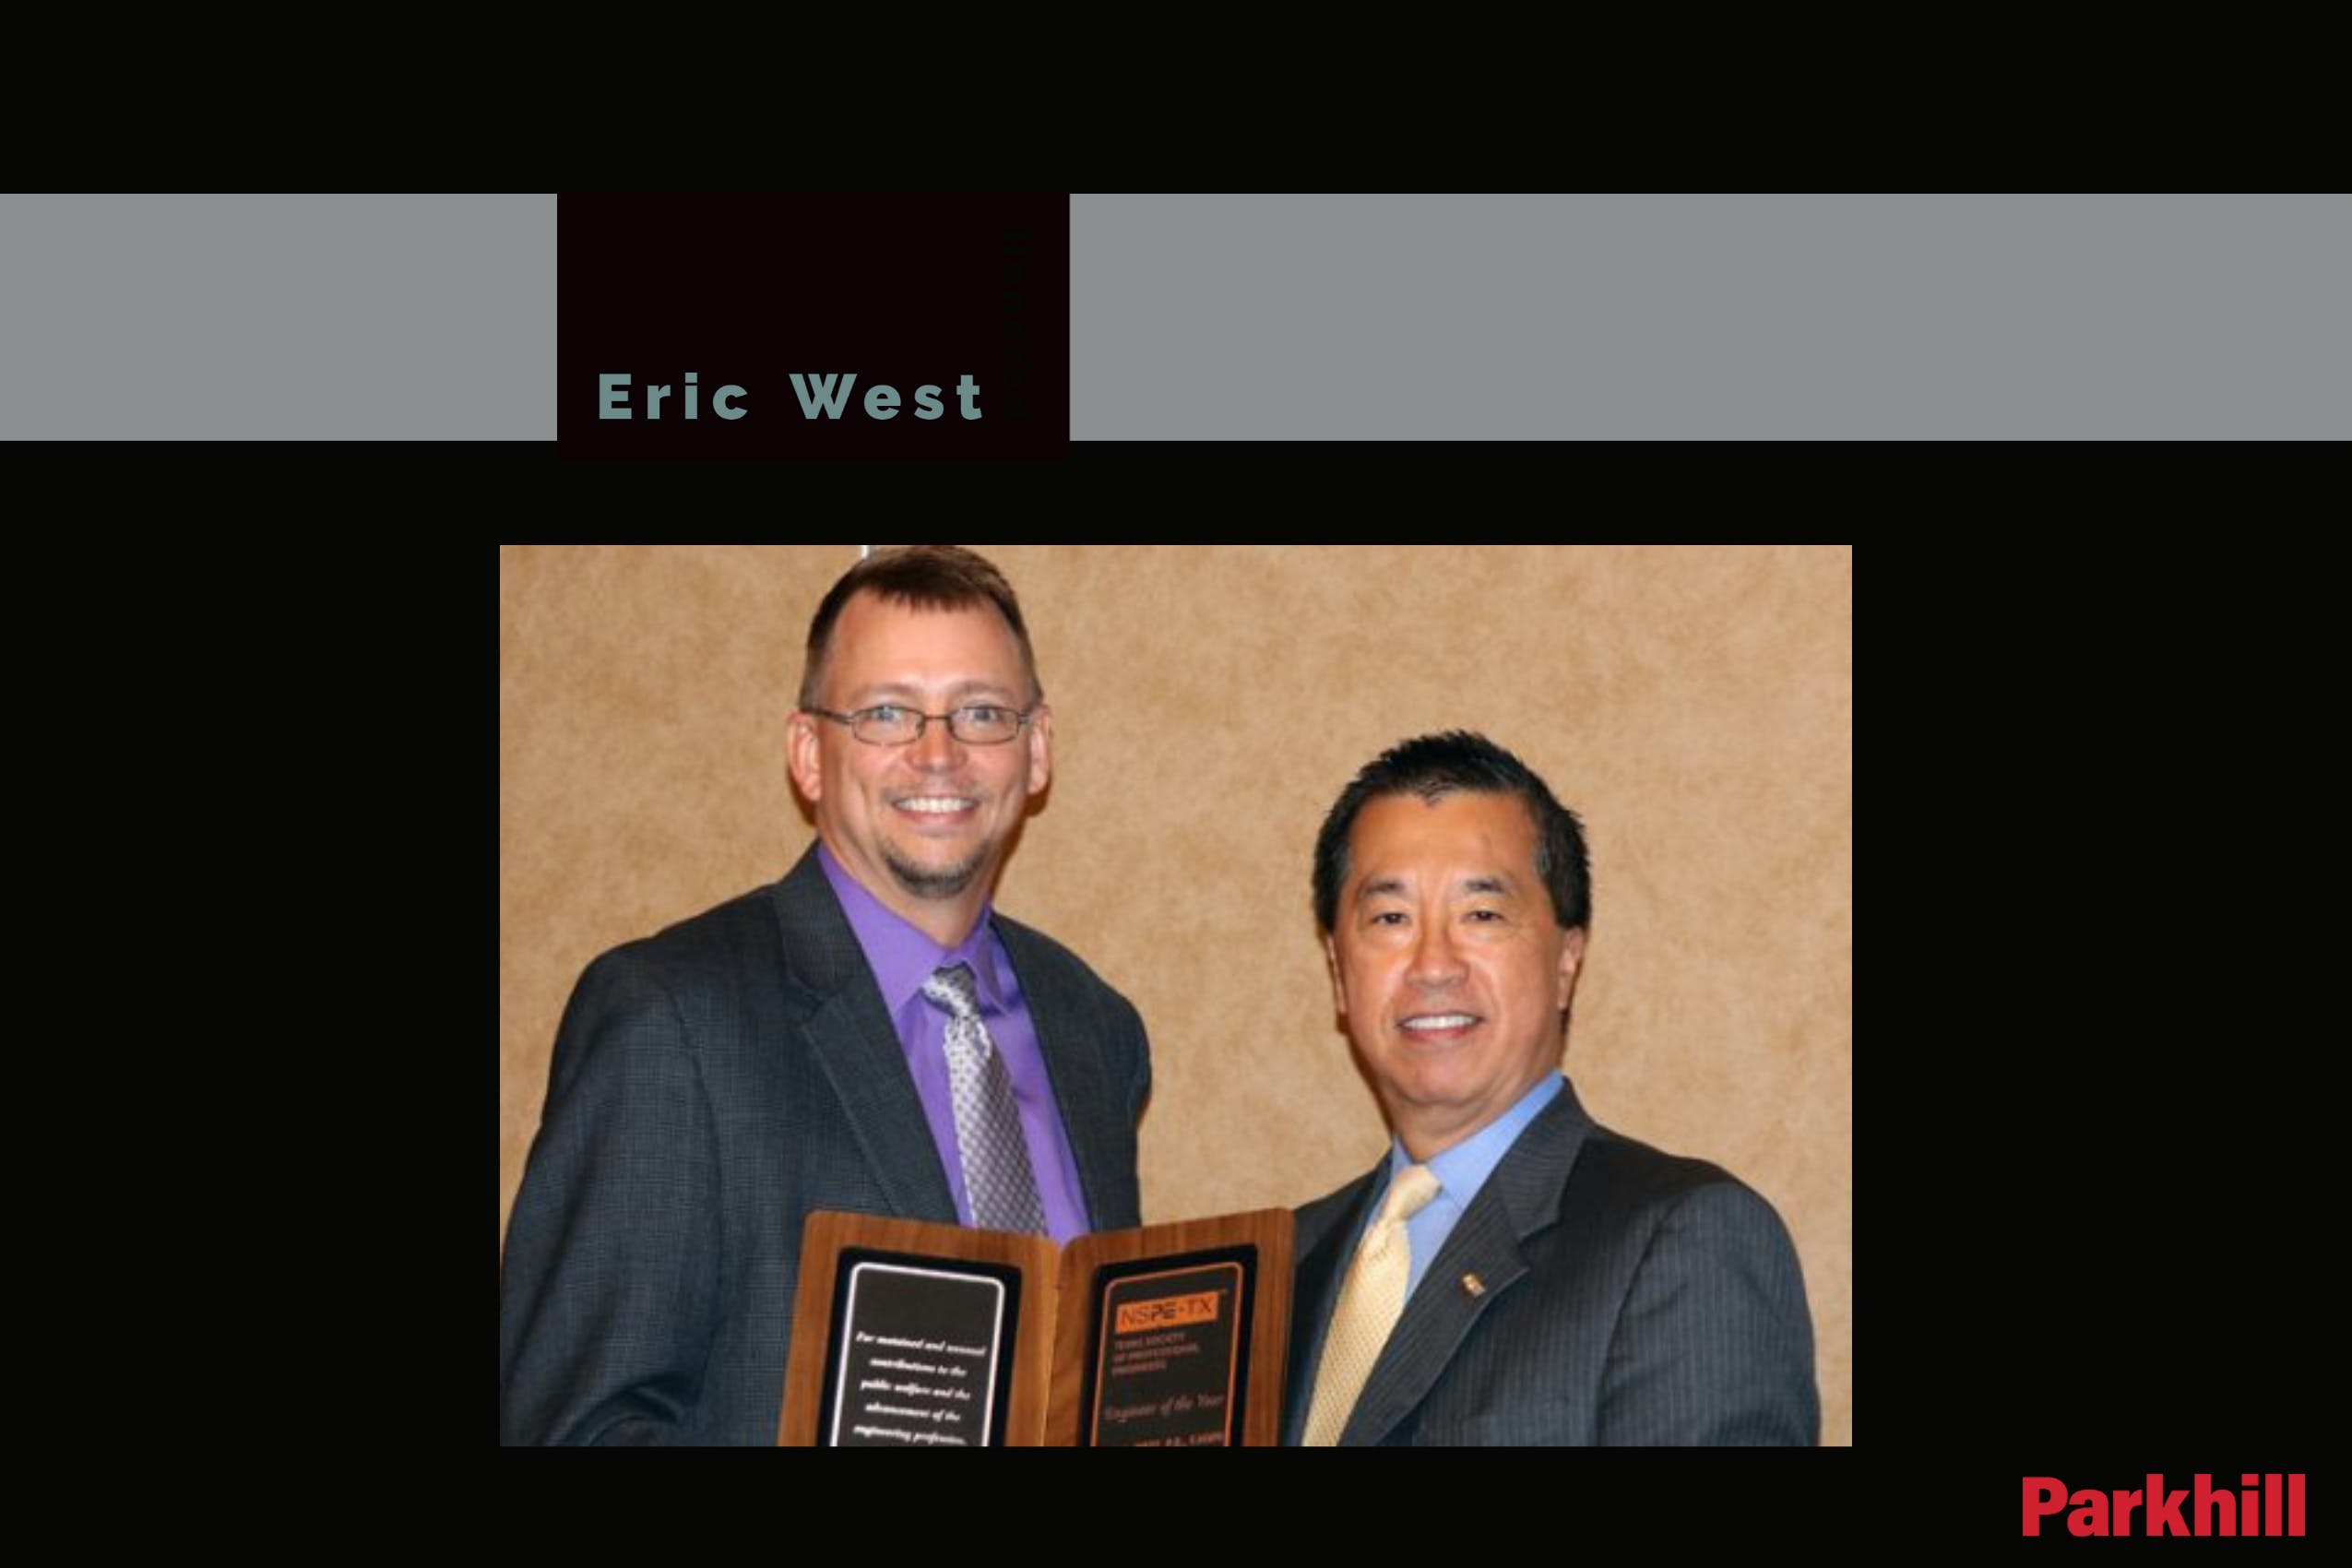 Eric West Named TSPE Engineer of the Year cover image